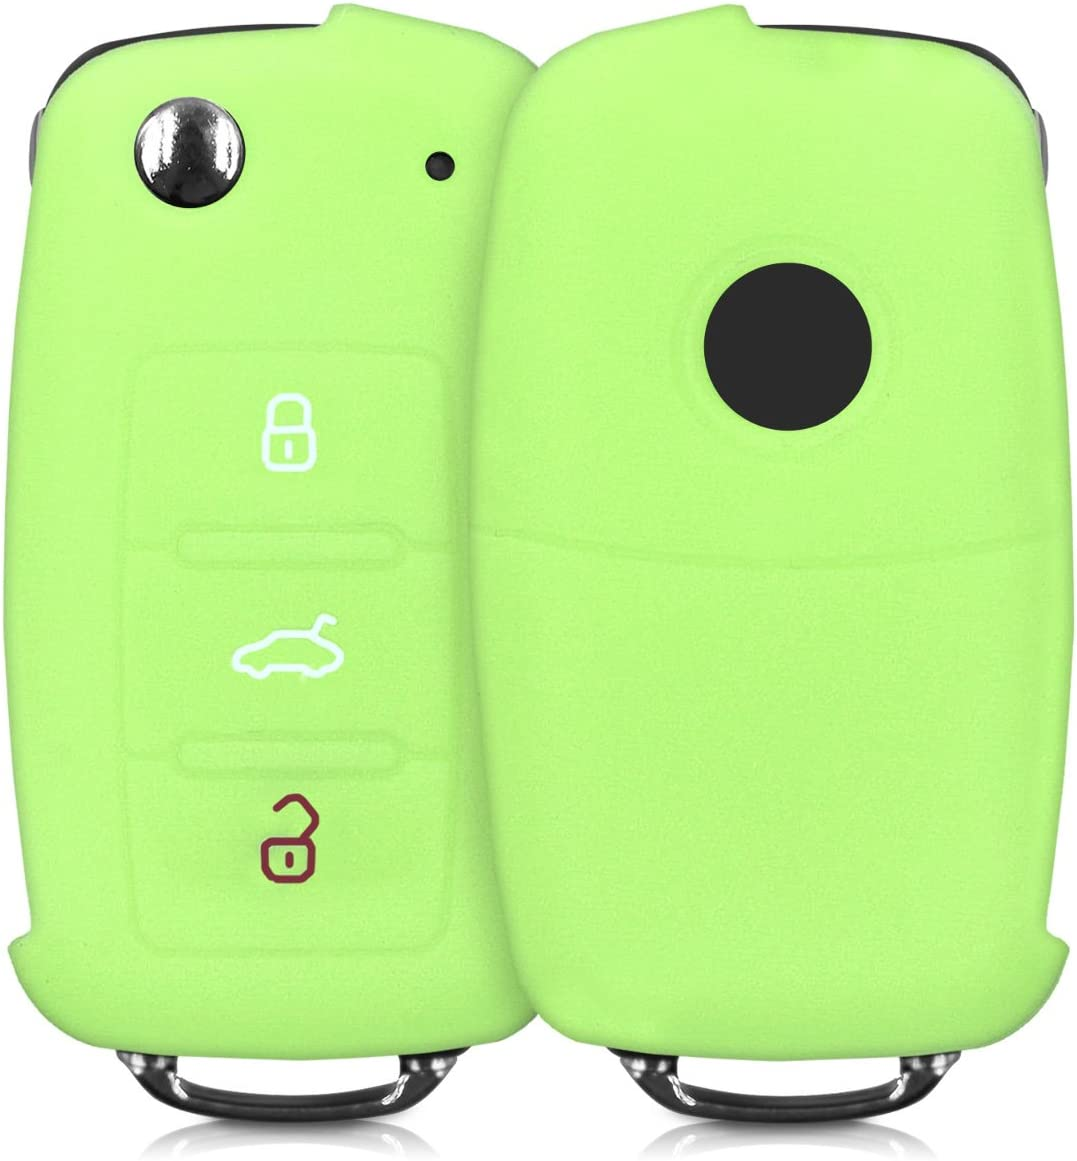 Silicone Protective Key Fob Cover Green kwmobile Car Key Cover Compatible with VW Skoda SEAT 3 Button Car Key